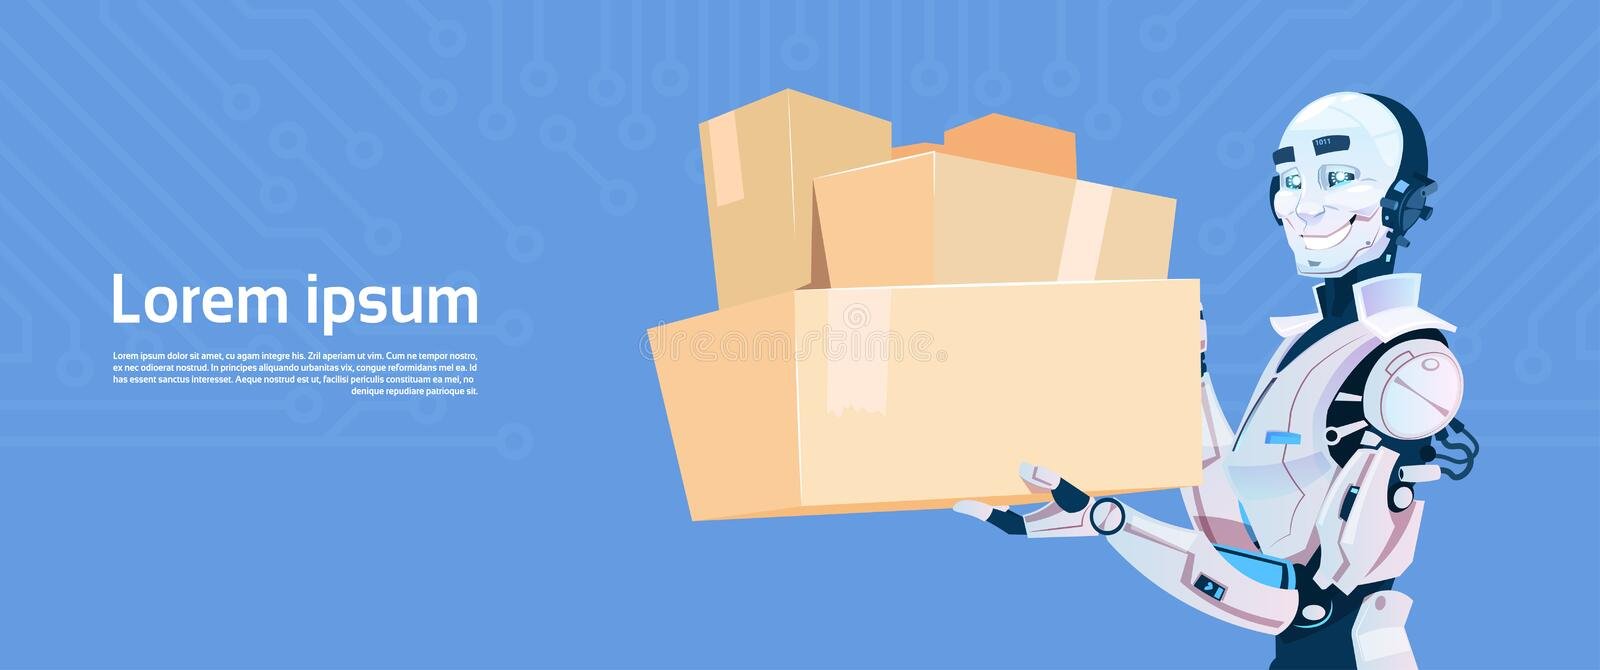 Modern Robot Hold Boxed Delivery Courier Futuristic Artificial Intelligence Mechanism Technology. Flat Vector Illustration royalty free illustration